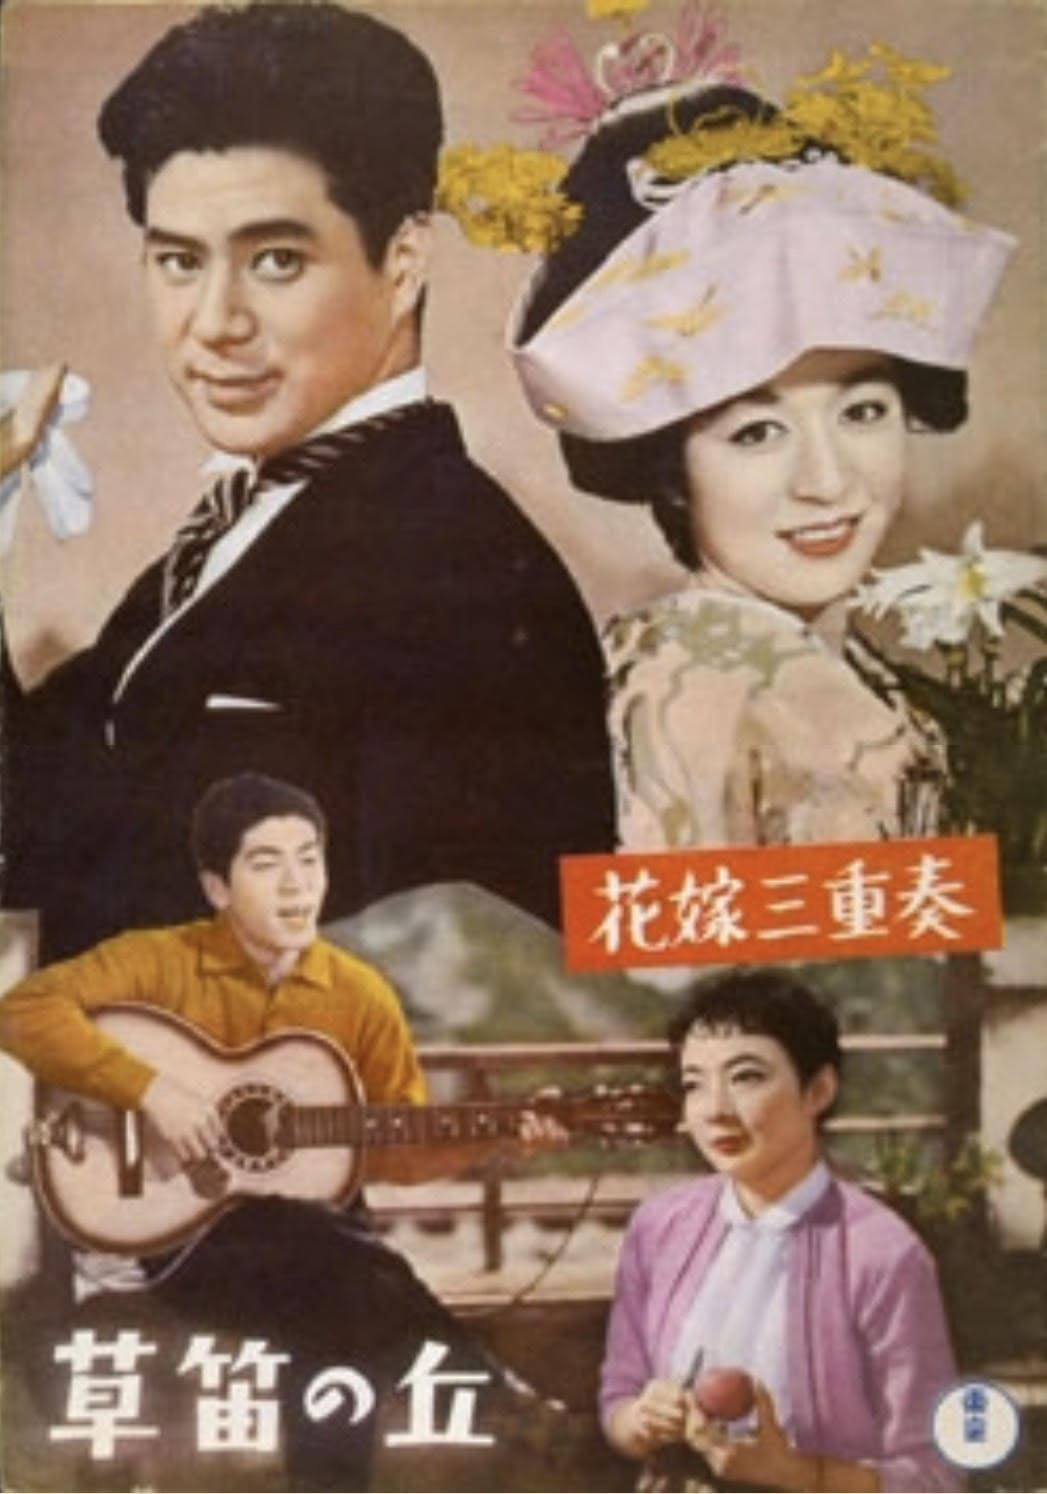 Song for a Bride (1958)